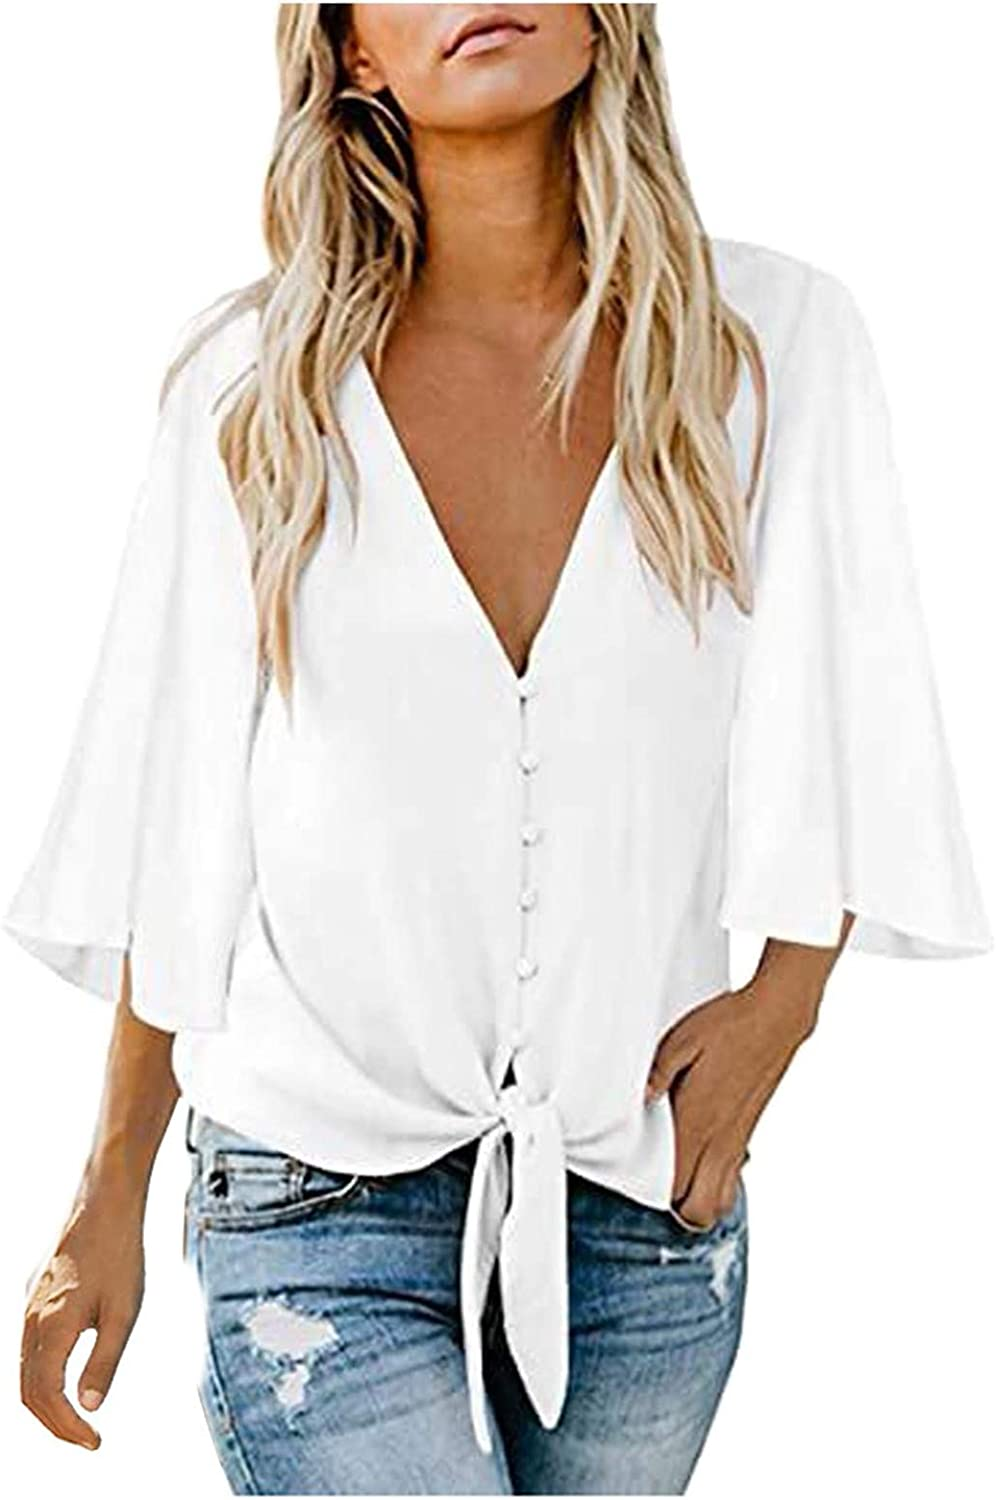 HGps8w Women's Casual 3/4 Sleeve V Neck Tie Knot Solid Color Button Down Loose Tops Blouses Shirt